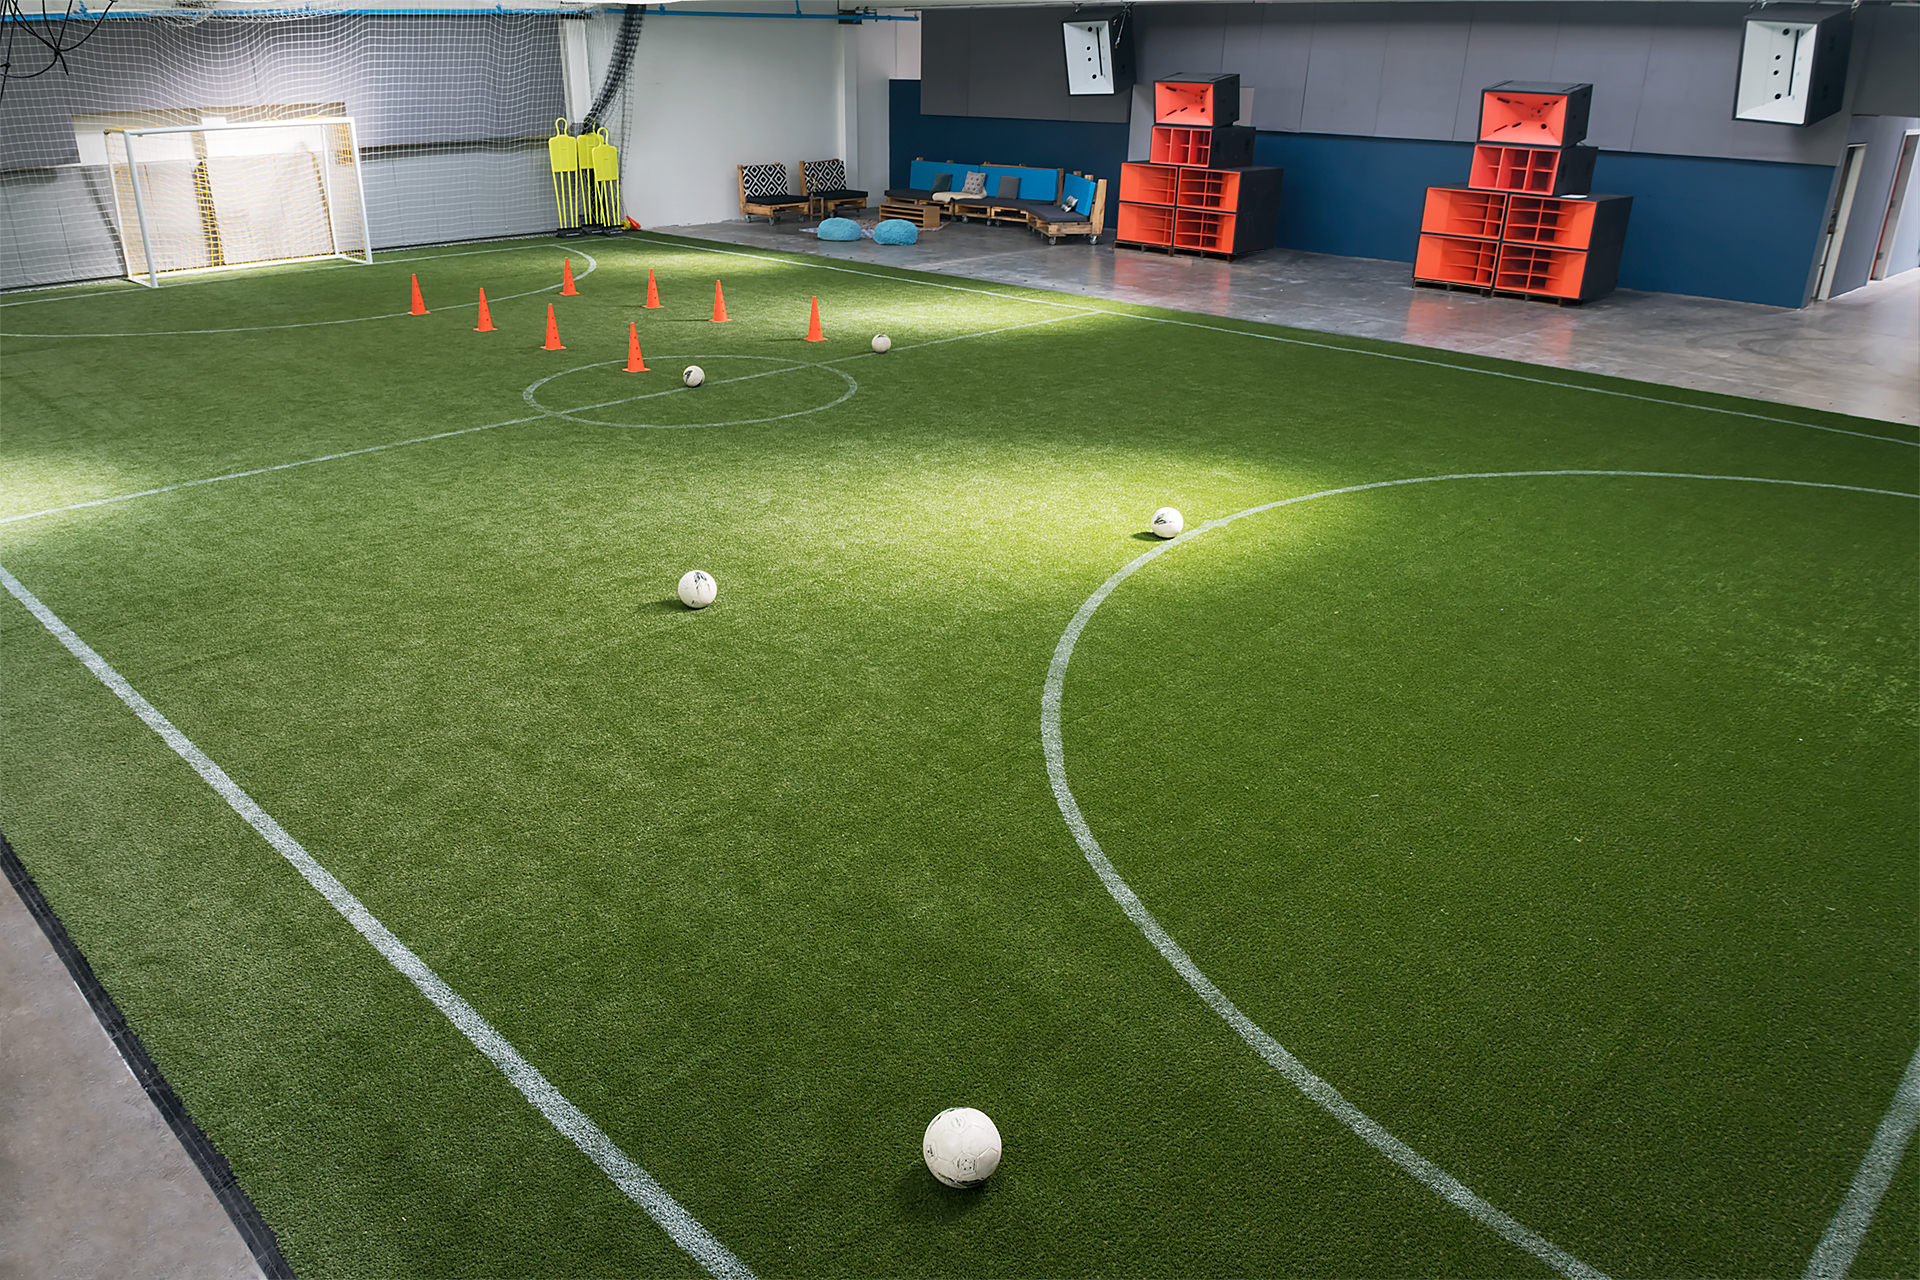 EVSA indoor soccer pitch overhead